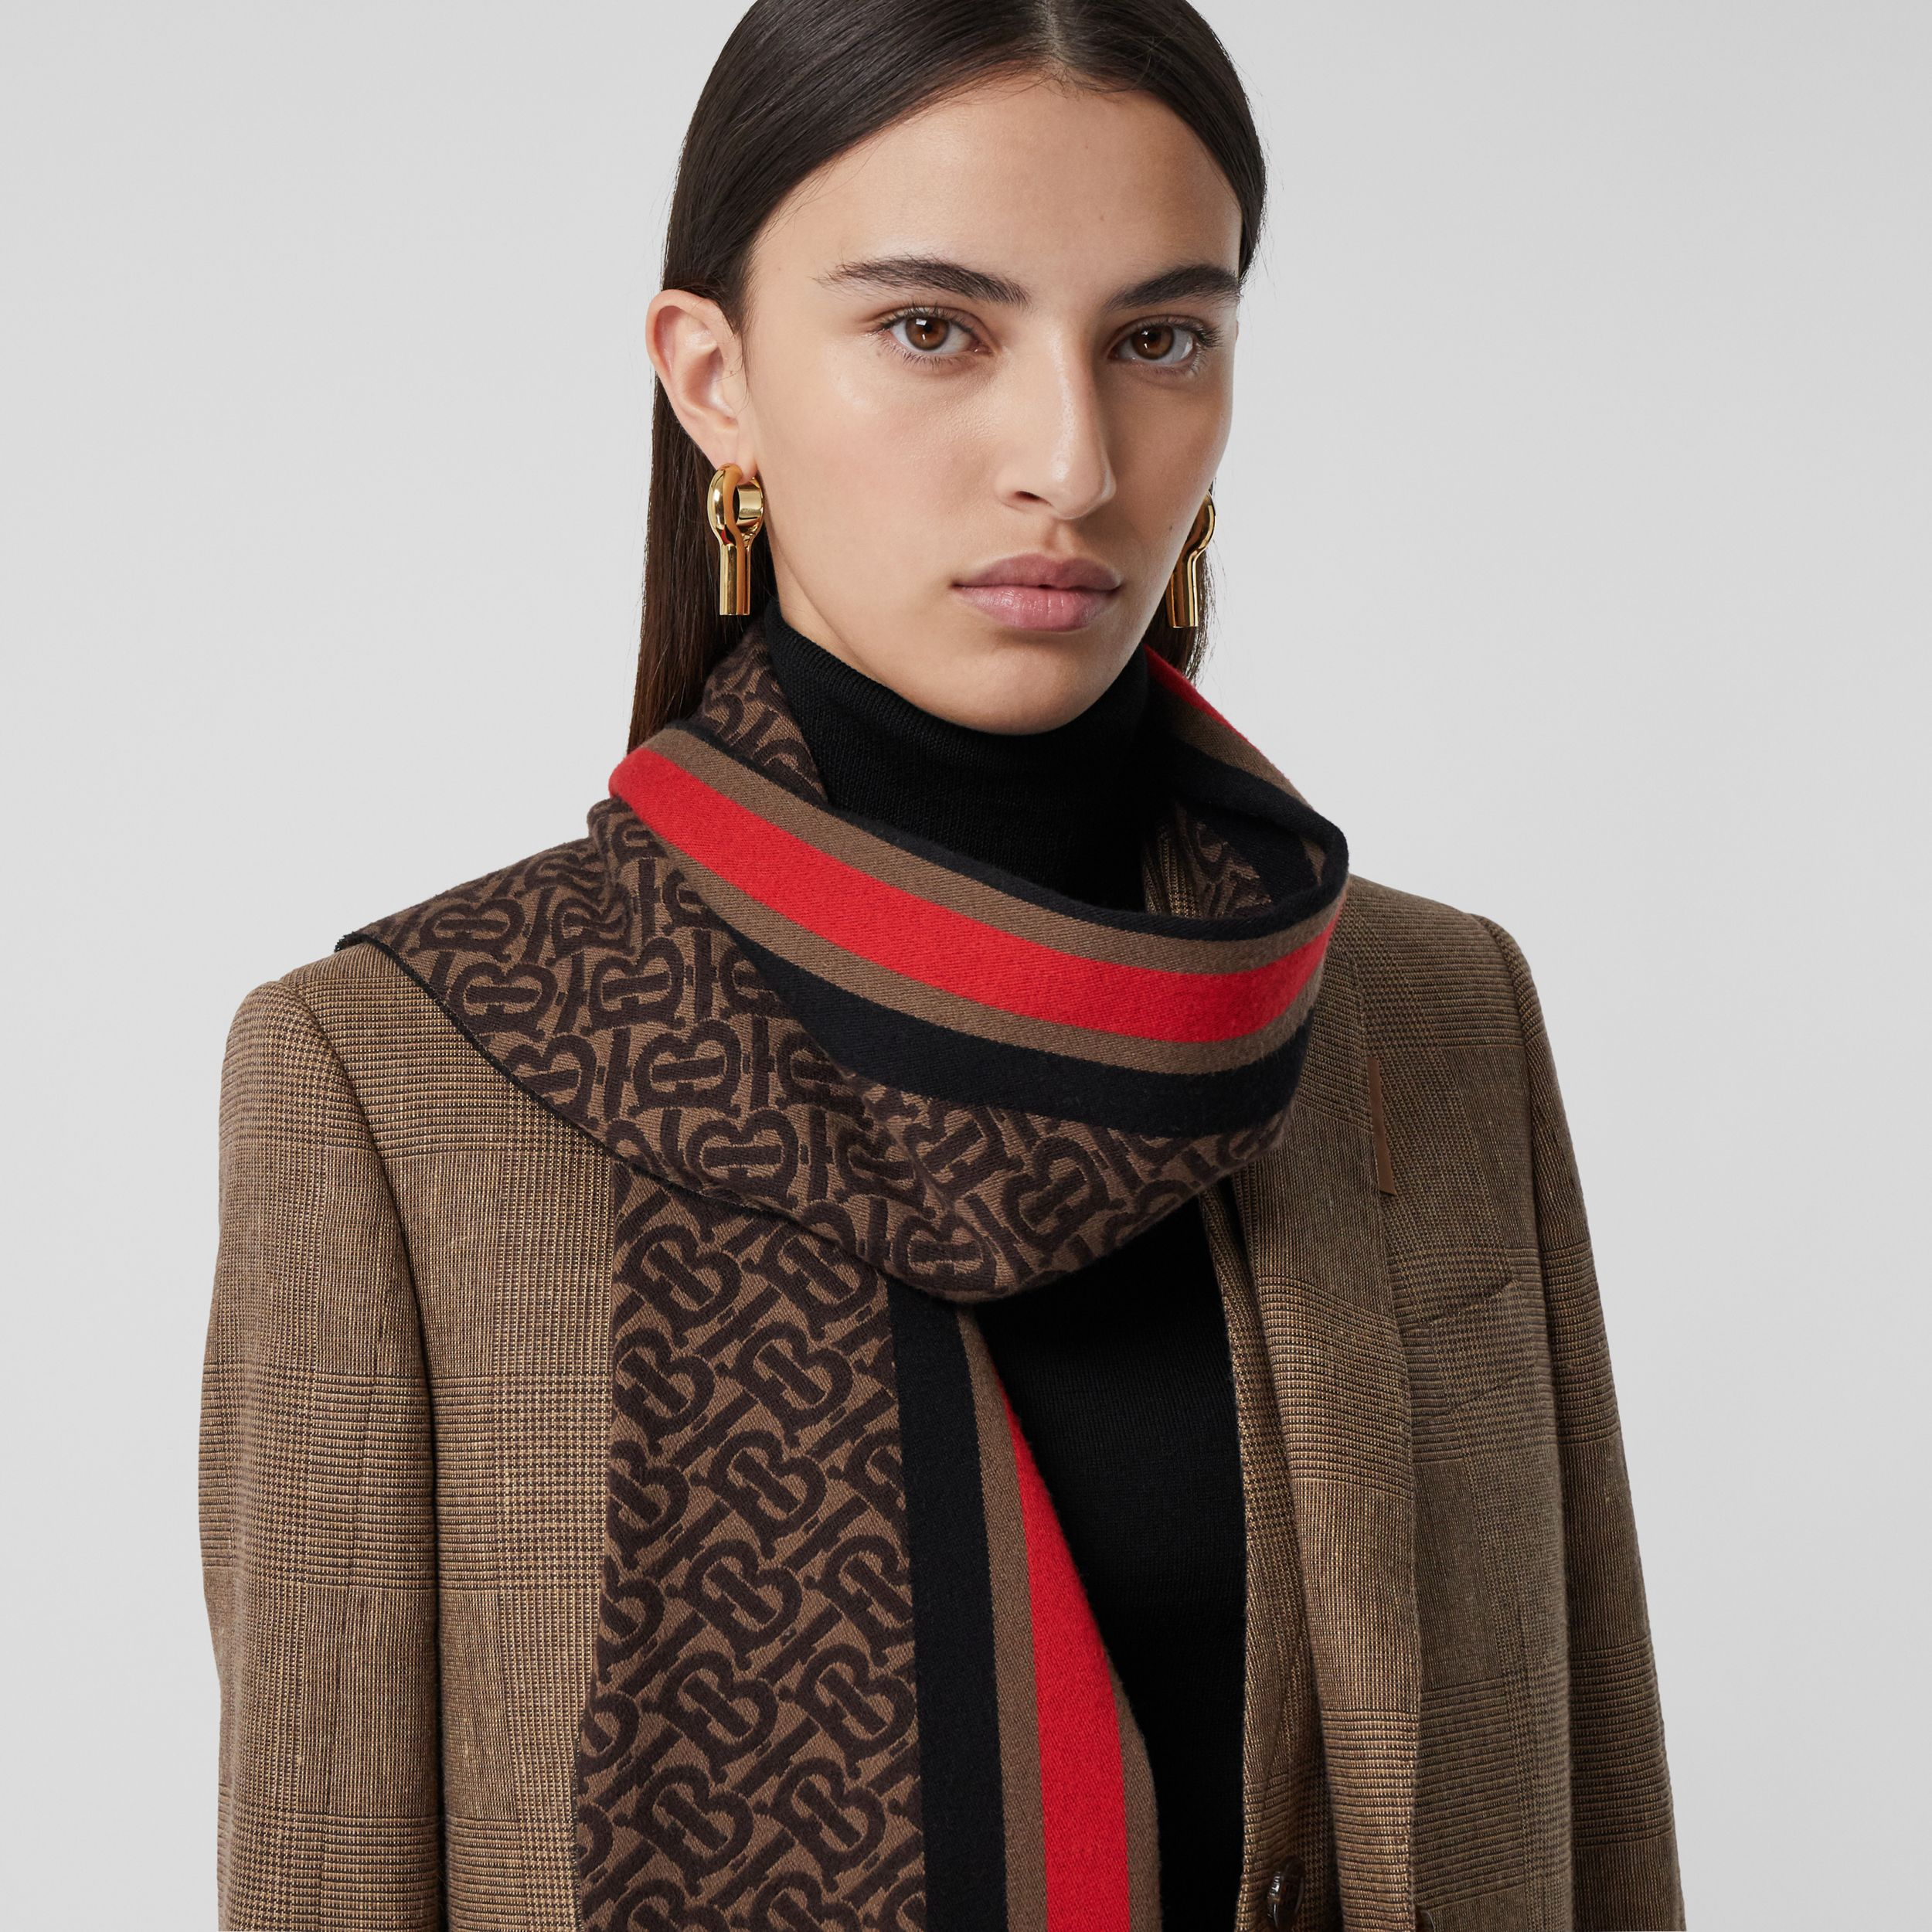 Striped Monogram Wool Cotton Jacquard Scarf in Bridle Brown | Burberry Canada - 3